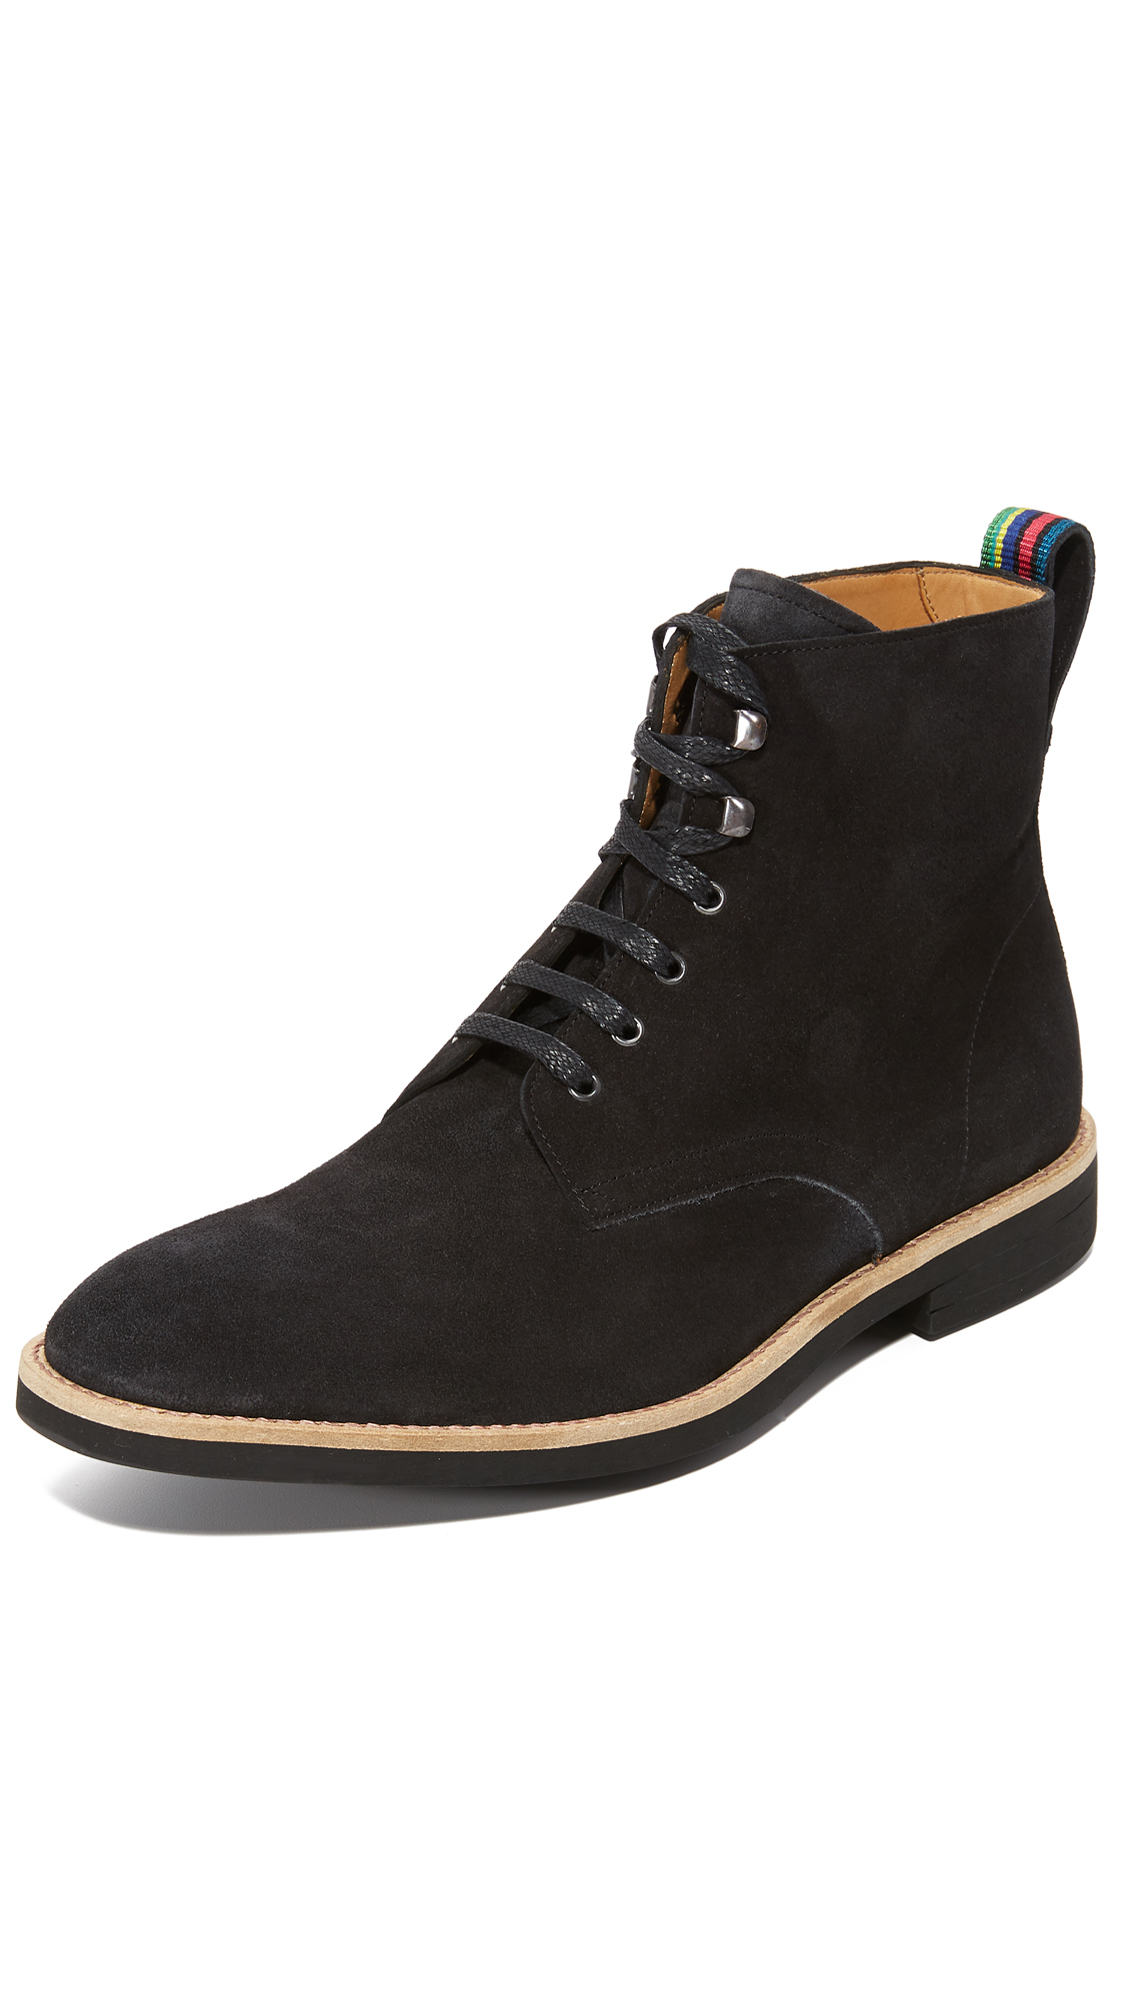 PS BY PAUL SMITH Hamilton Leather Boots in Anthracite